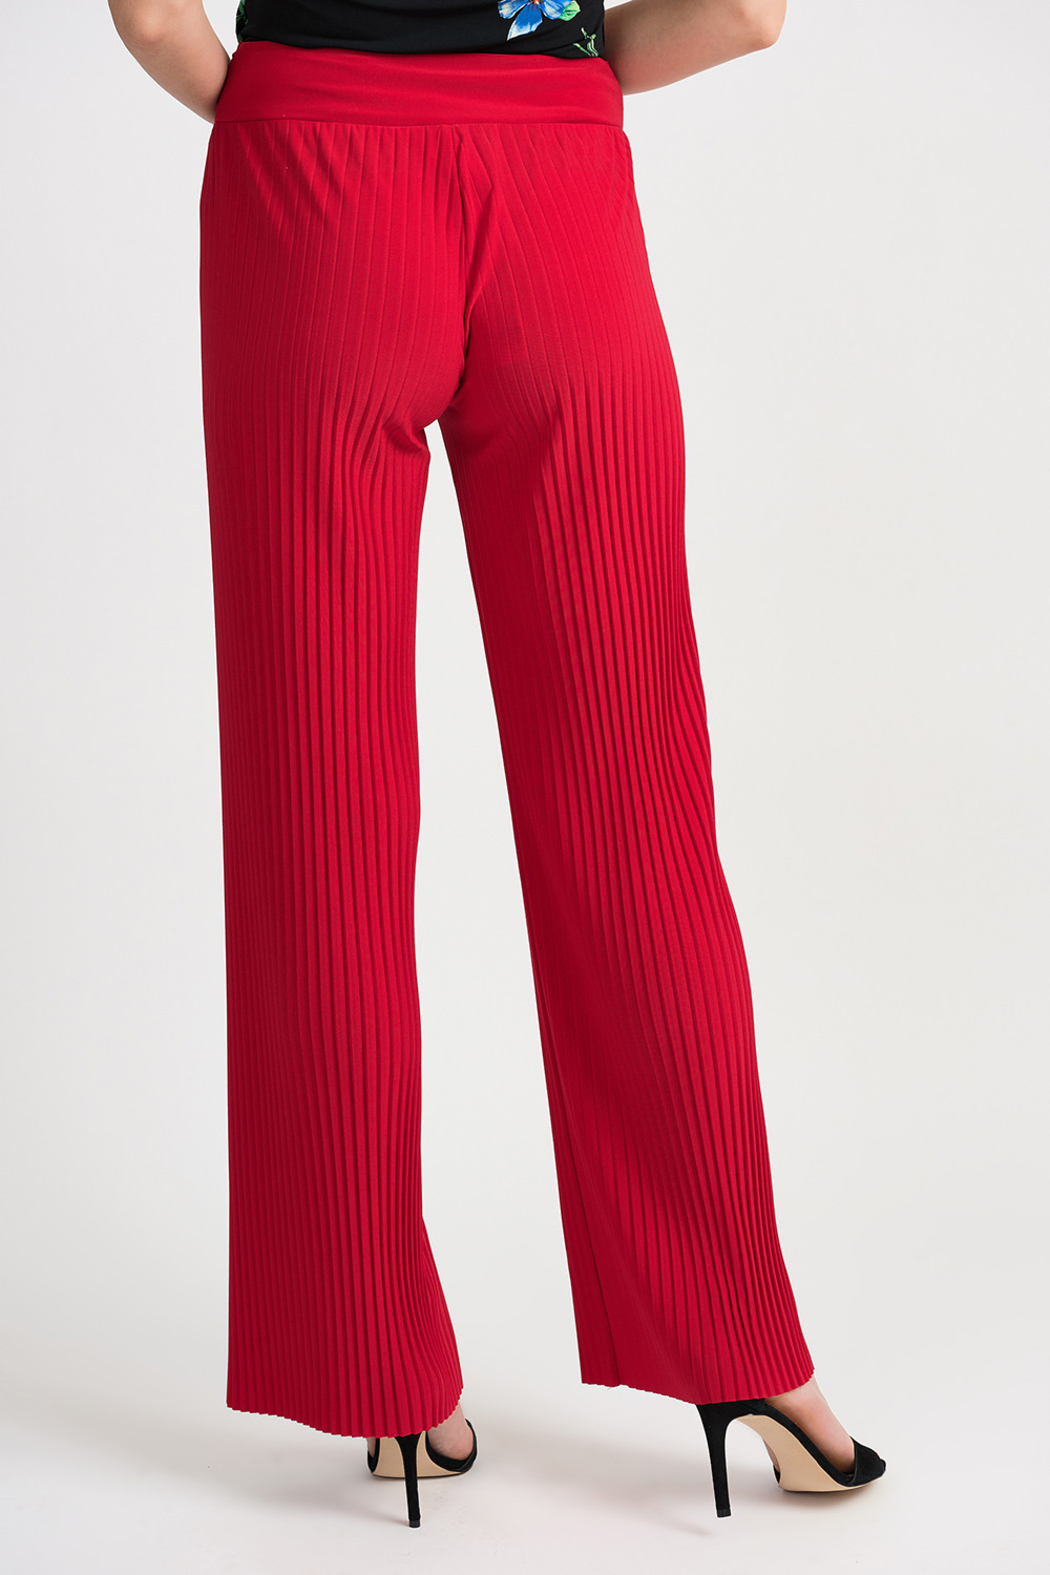 Joseph Ribkoff Pleated Palazzo Pant, Lipstick Red - Side Cropped Image